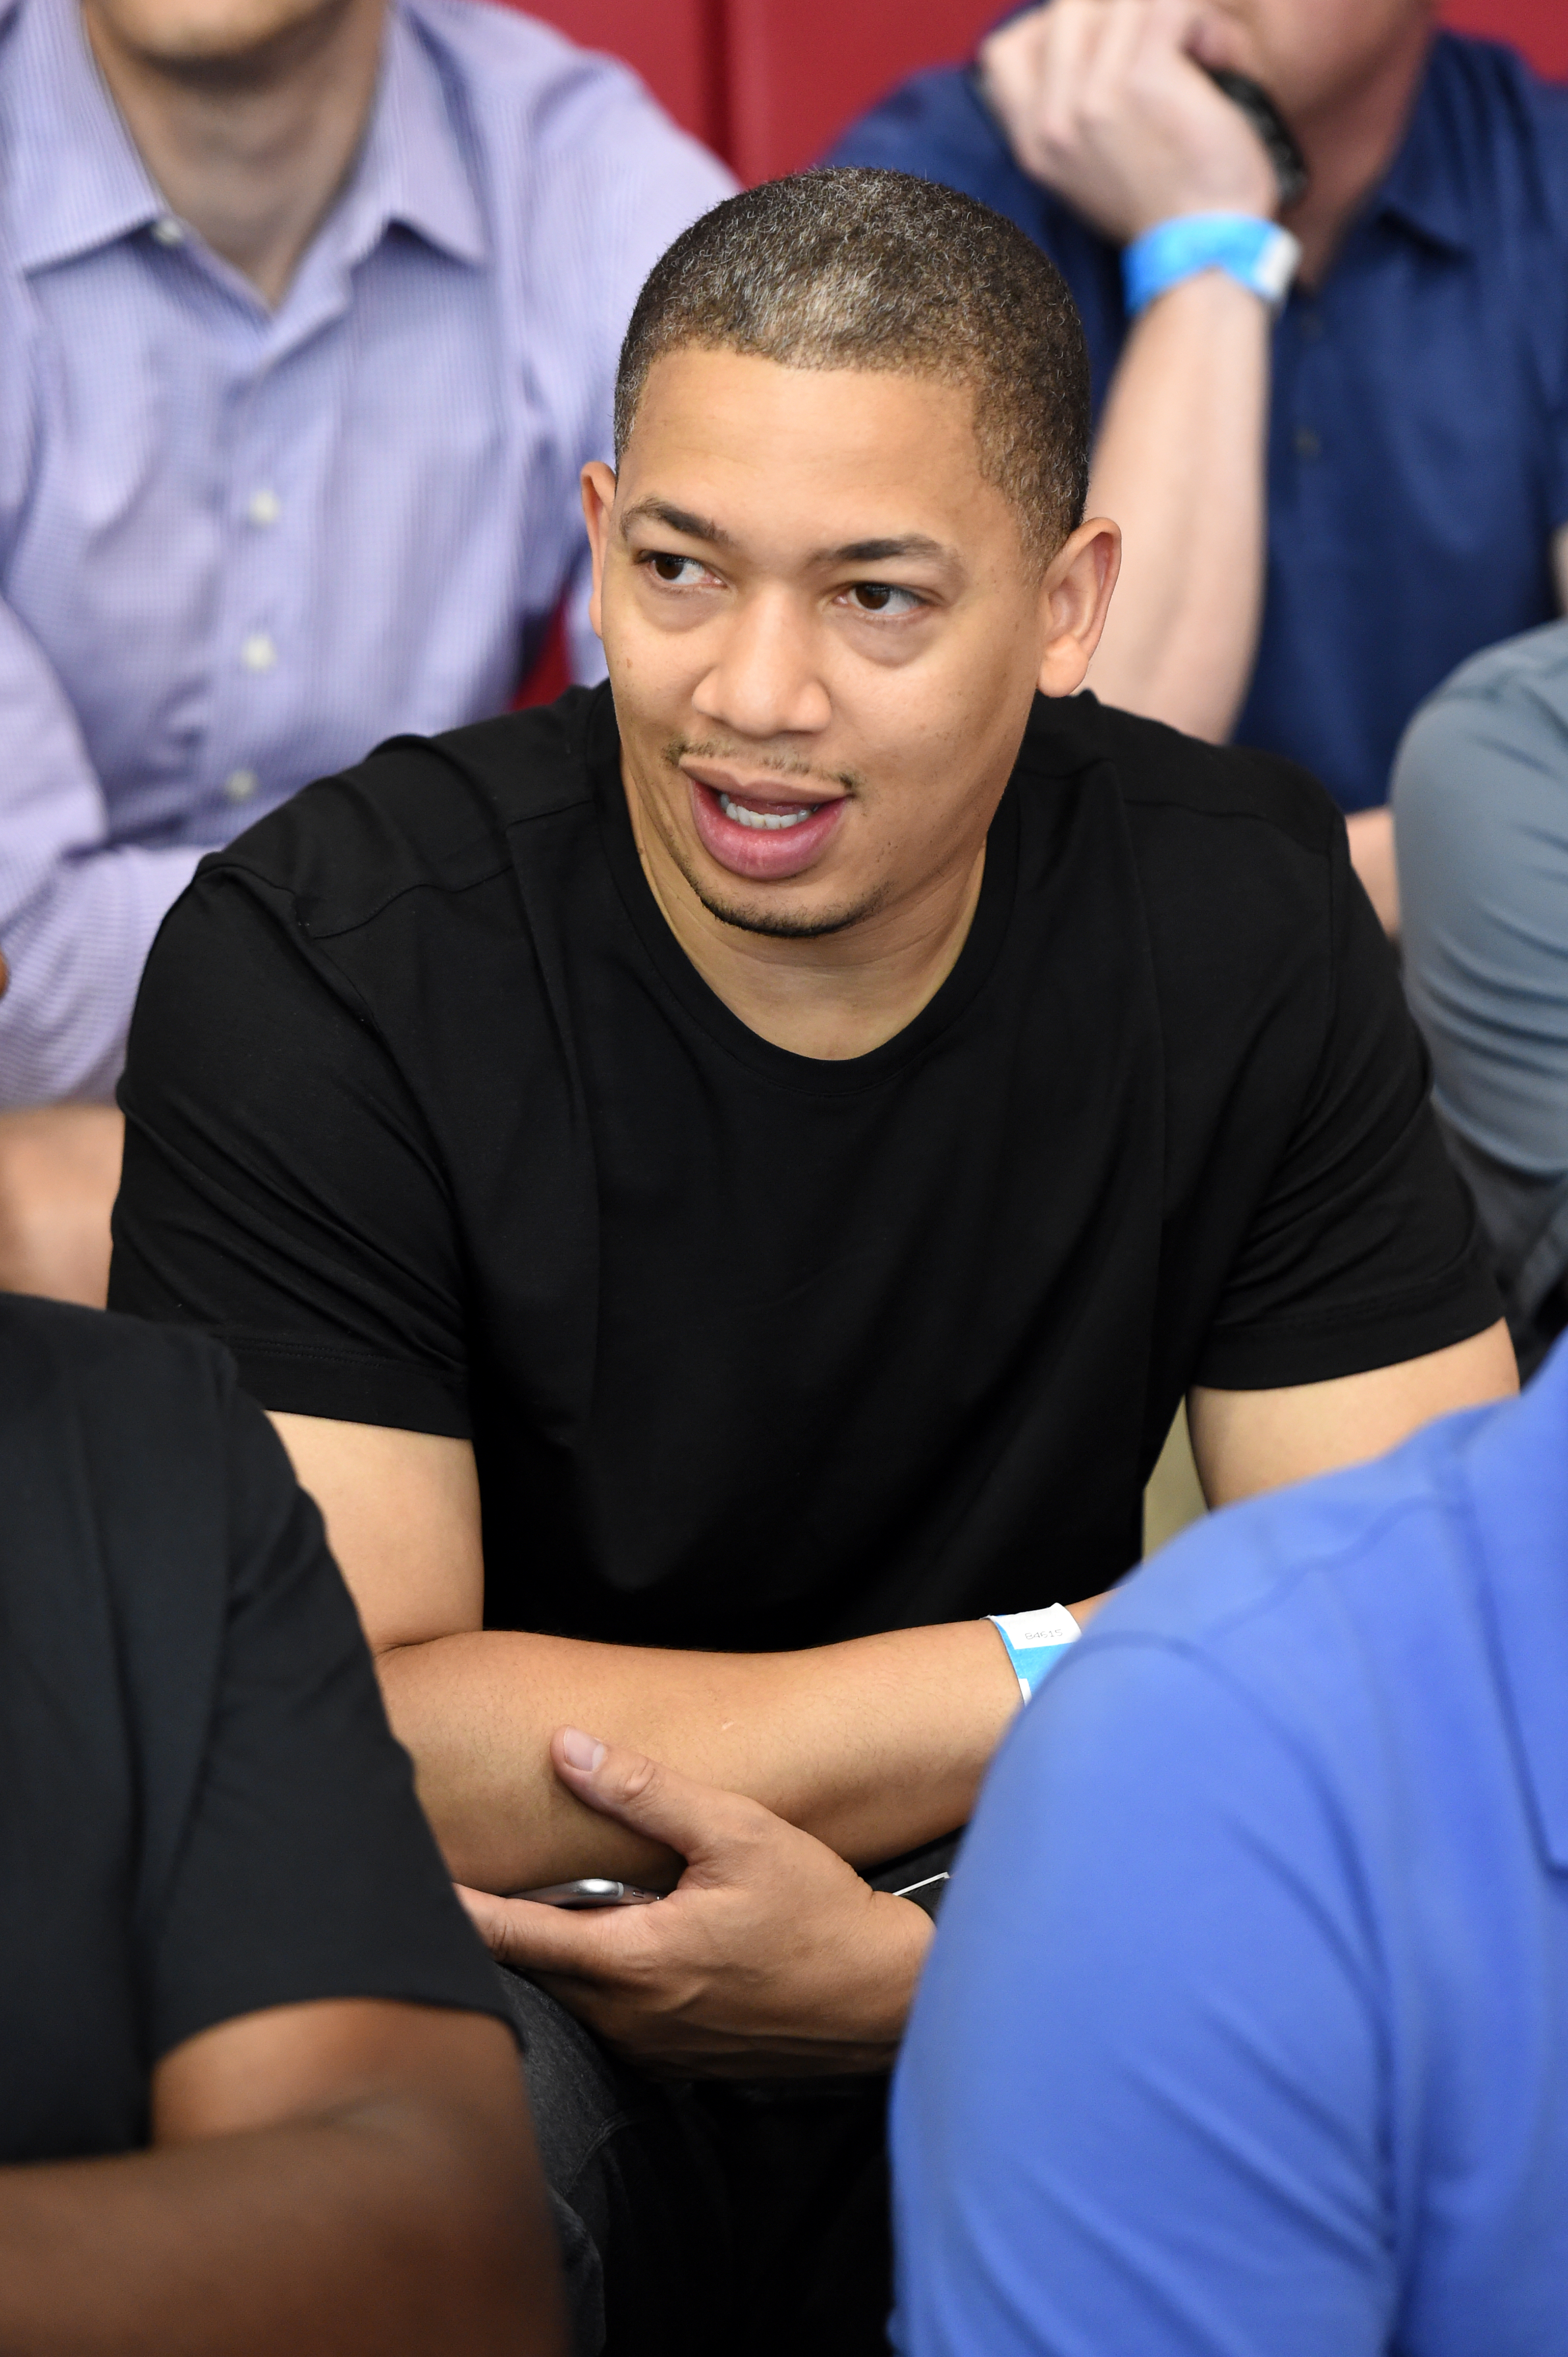 LAS VEGAS, NV - JULY 20: Cleveland Cavaliers Head Coach Tyronn Lue attends a USA Basketball Men's National Team practice on July 20, 2016 at Mendenhall Center on the University of Nevada, Las Vegas campus in Las Vegas, Nevada. (Photo by Andrew D. Bernstei